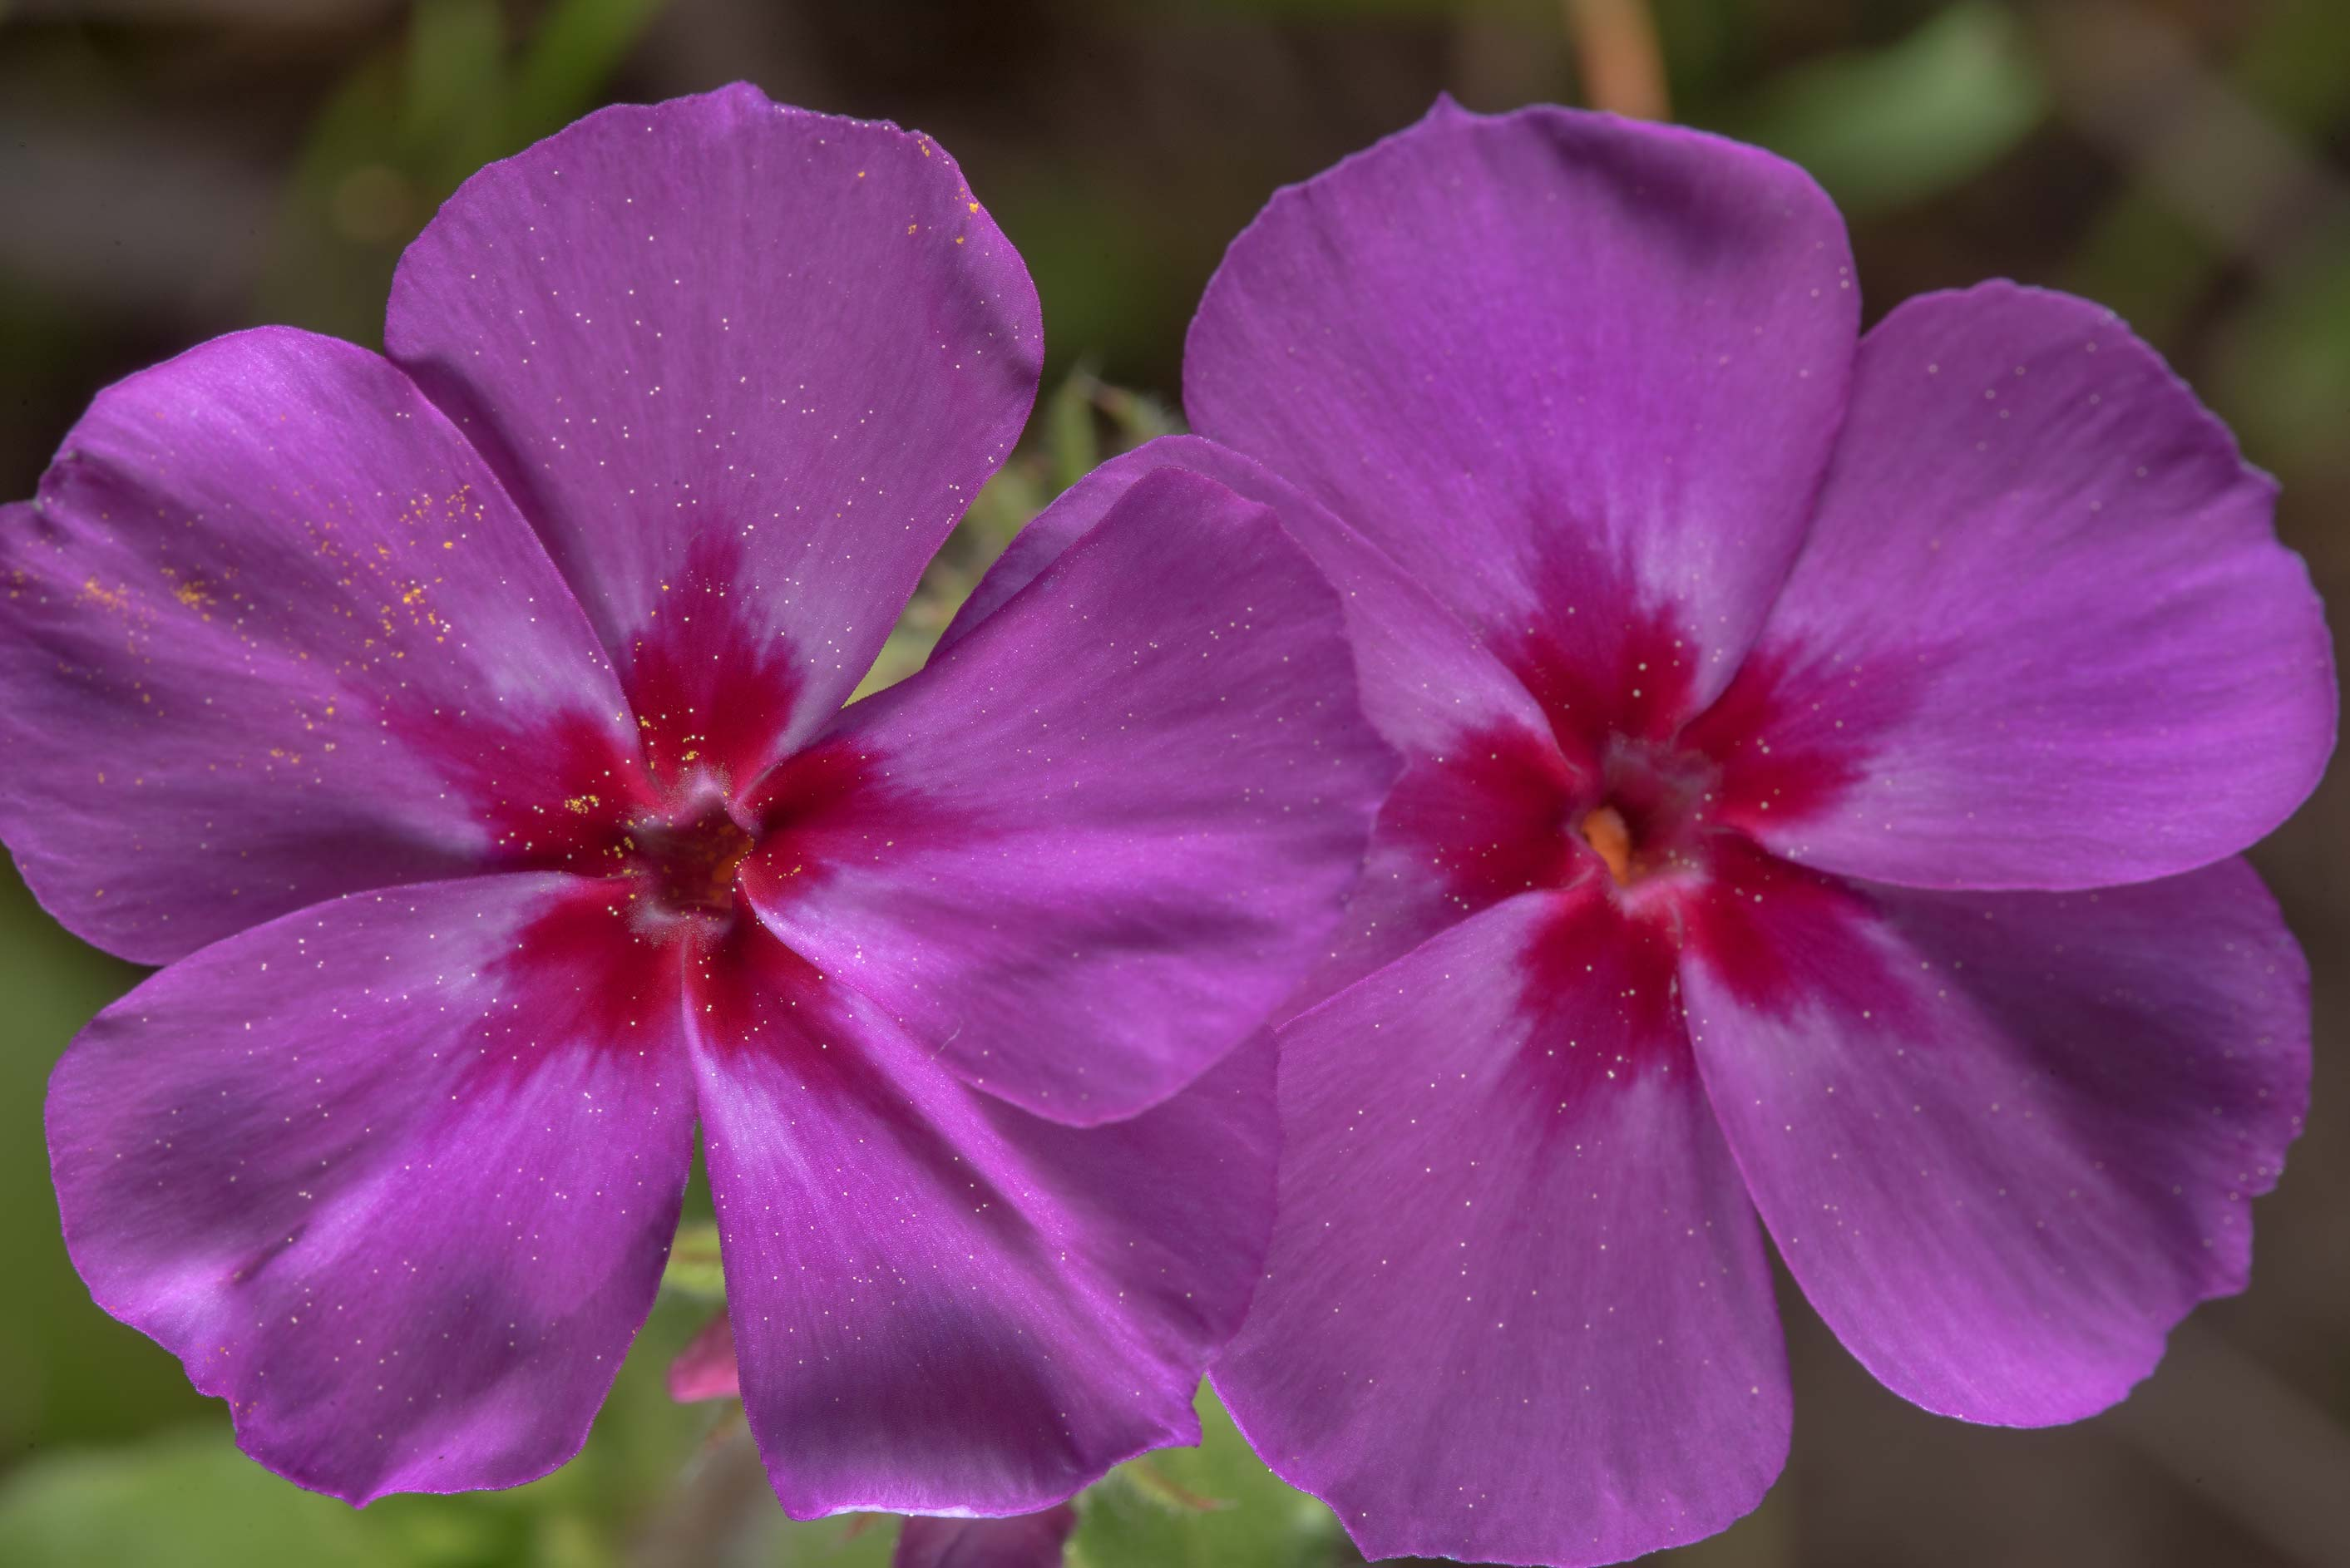 Pink phlox flowers in Washington-on-the-Brazos State Historic Site. Washington, Texas